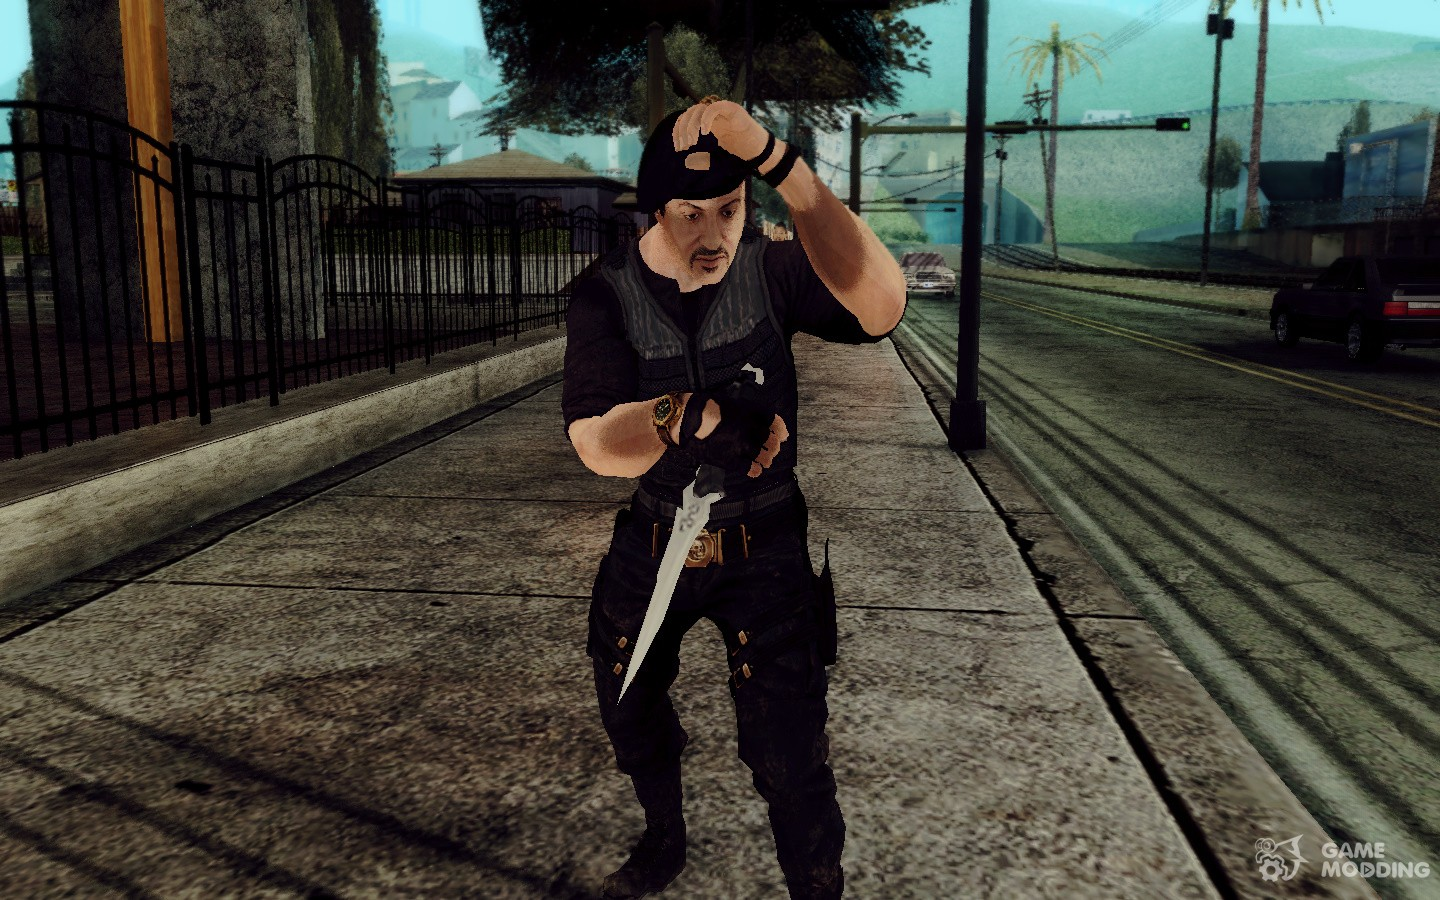 barni in the movie quotthe expendablesquot for gta san andreas